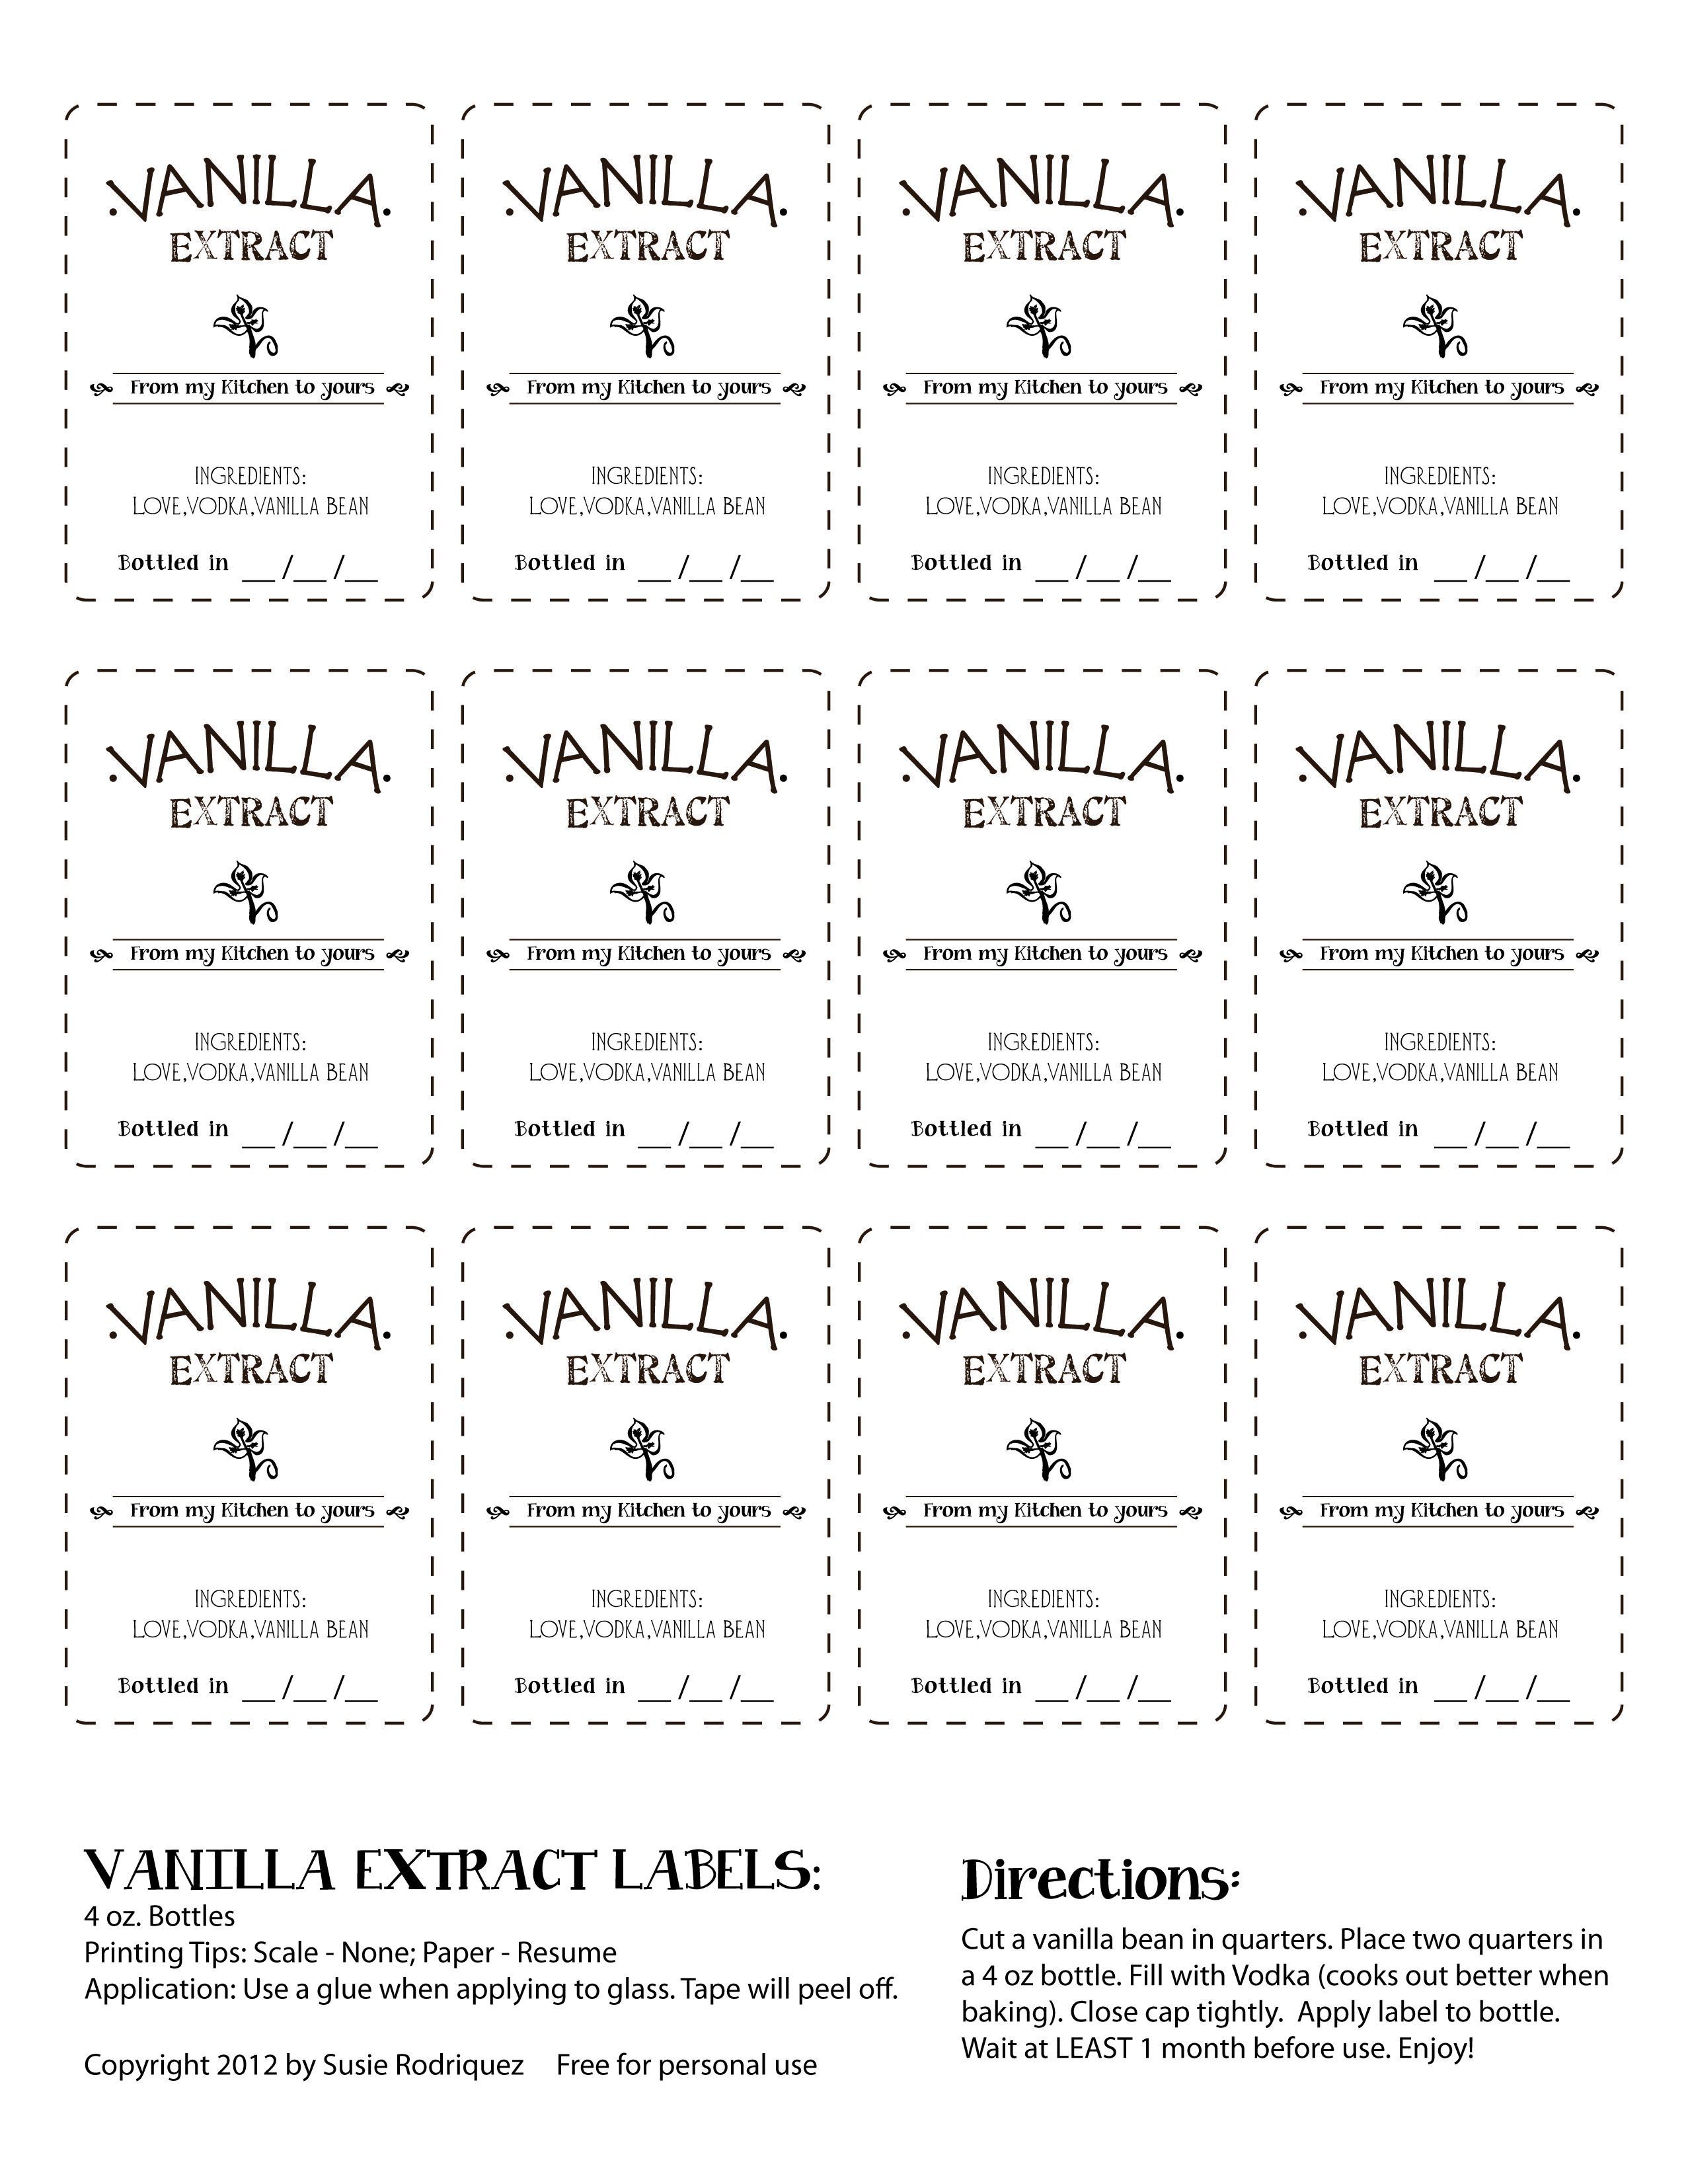 Vanilla Extract Labels Free For Personal Use  Crafty Crafty Regarding Homemade Vanilla Extract Label Template